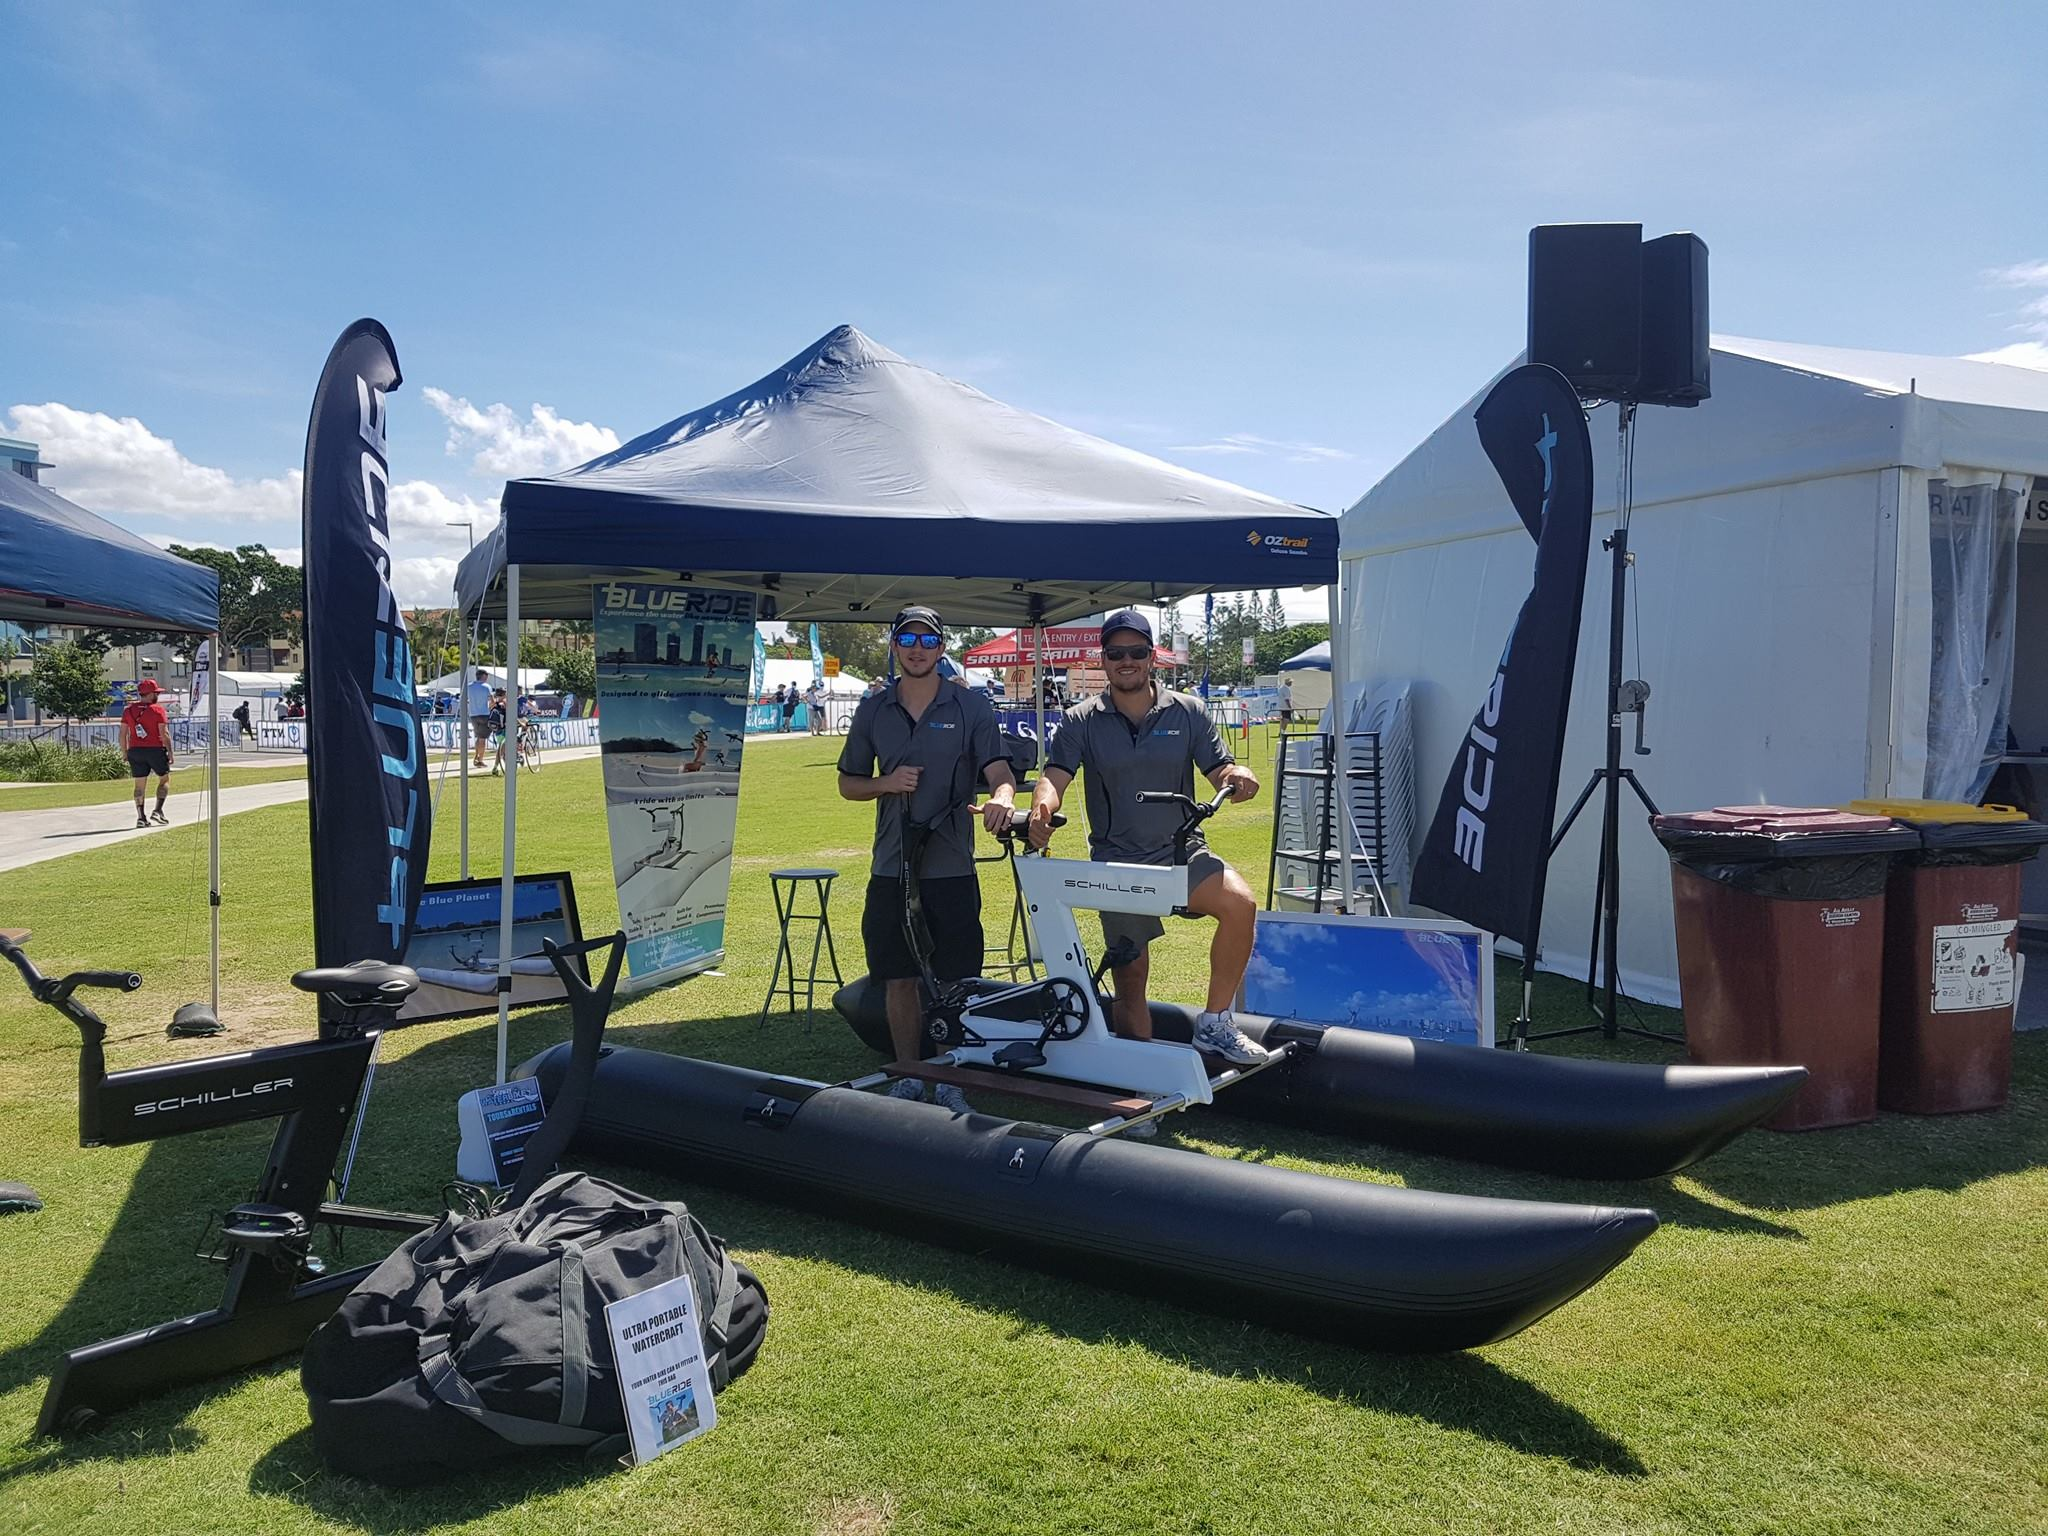 Gold Coast Triathlon exhibition